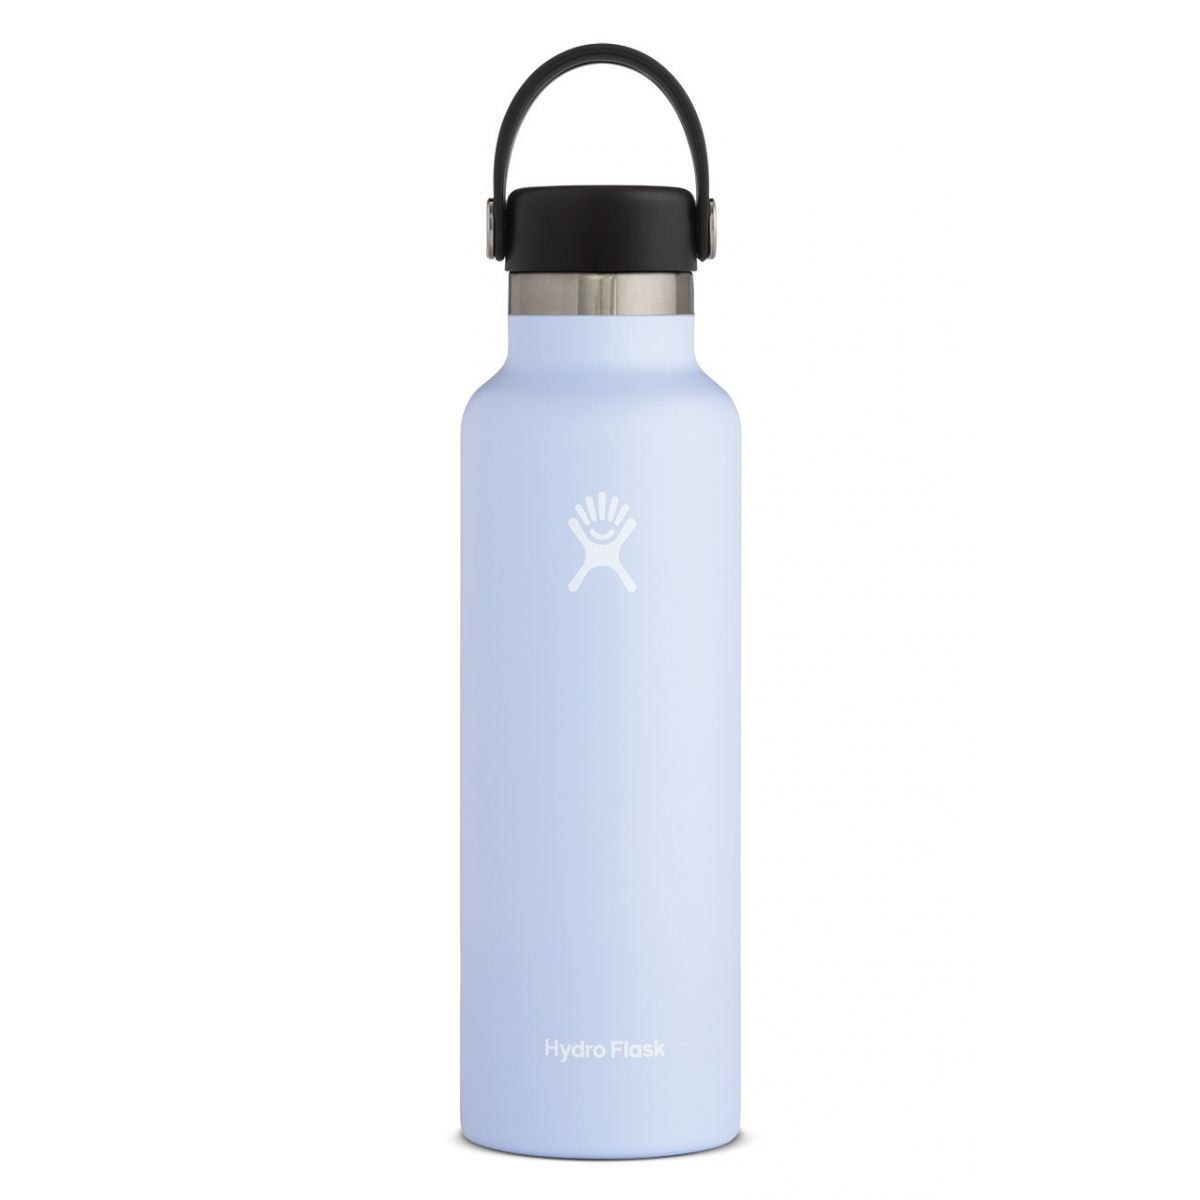 Image For Hydroflask Insulated Water Bottle, Fog